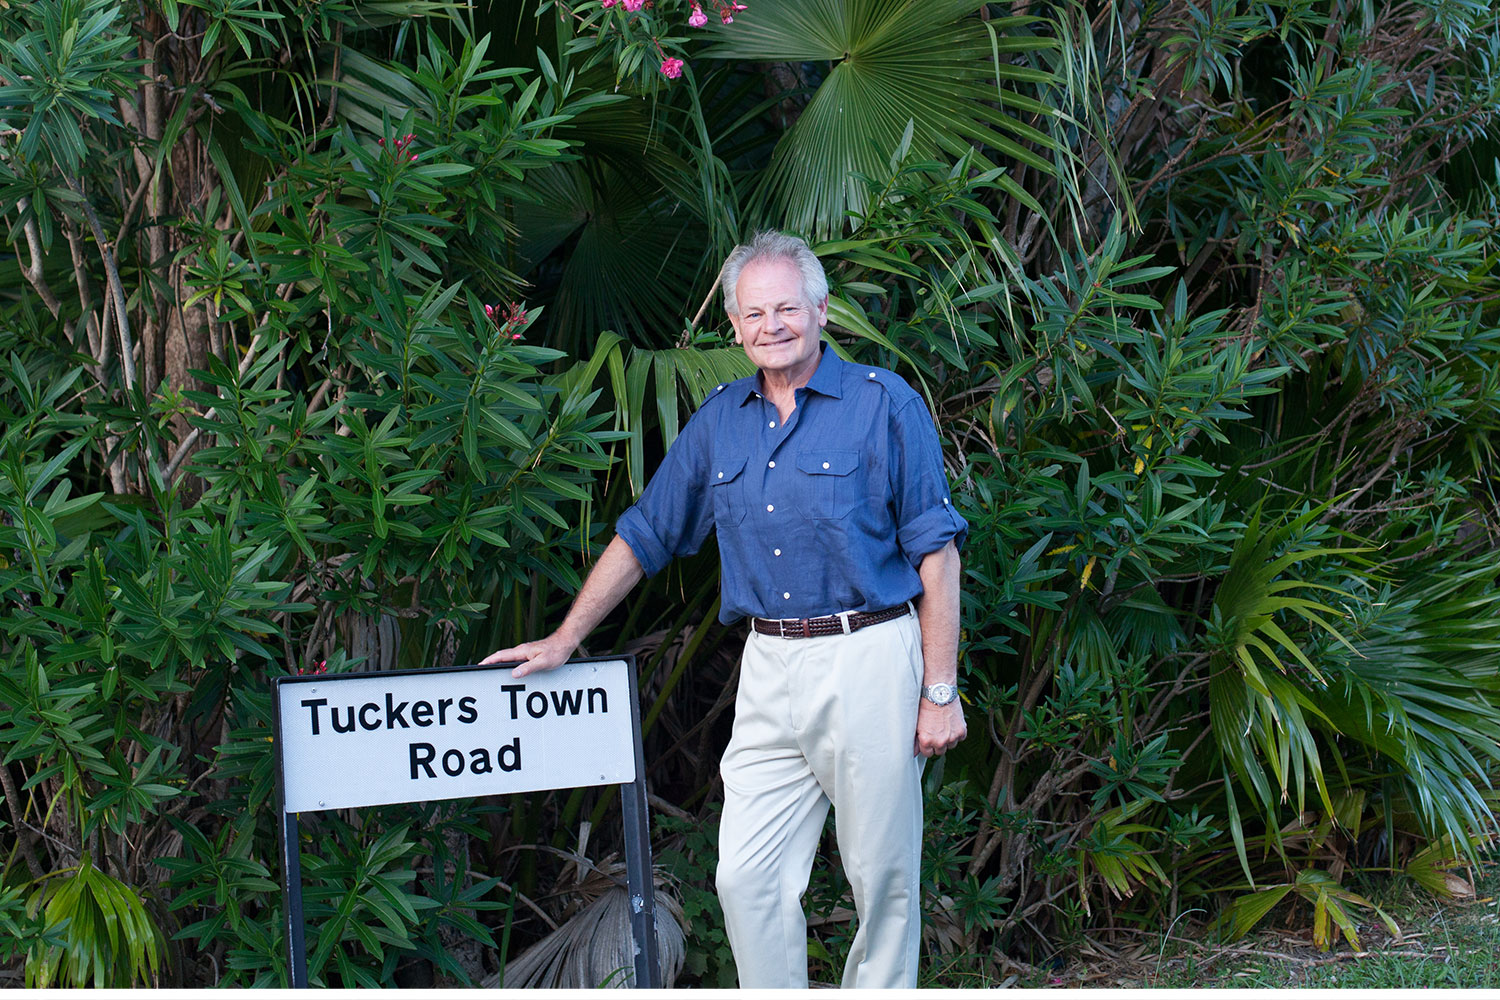 His favorite road on his favorite vacation, Tuckers Town Road.